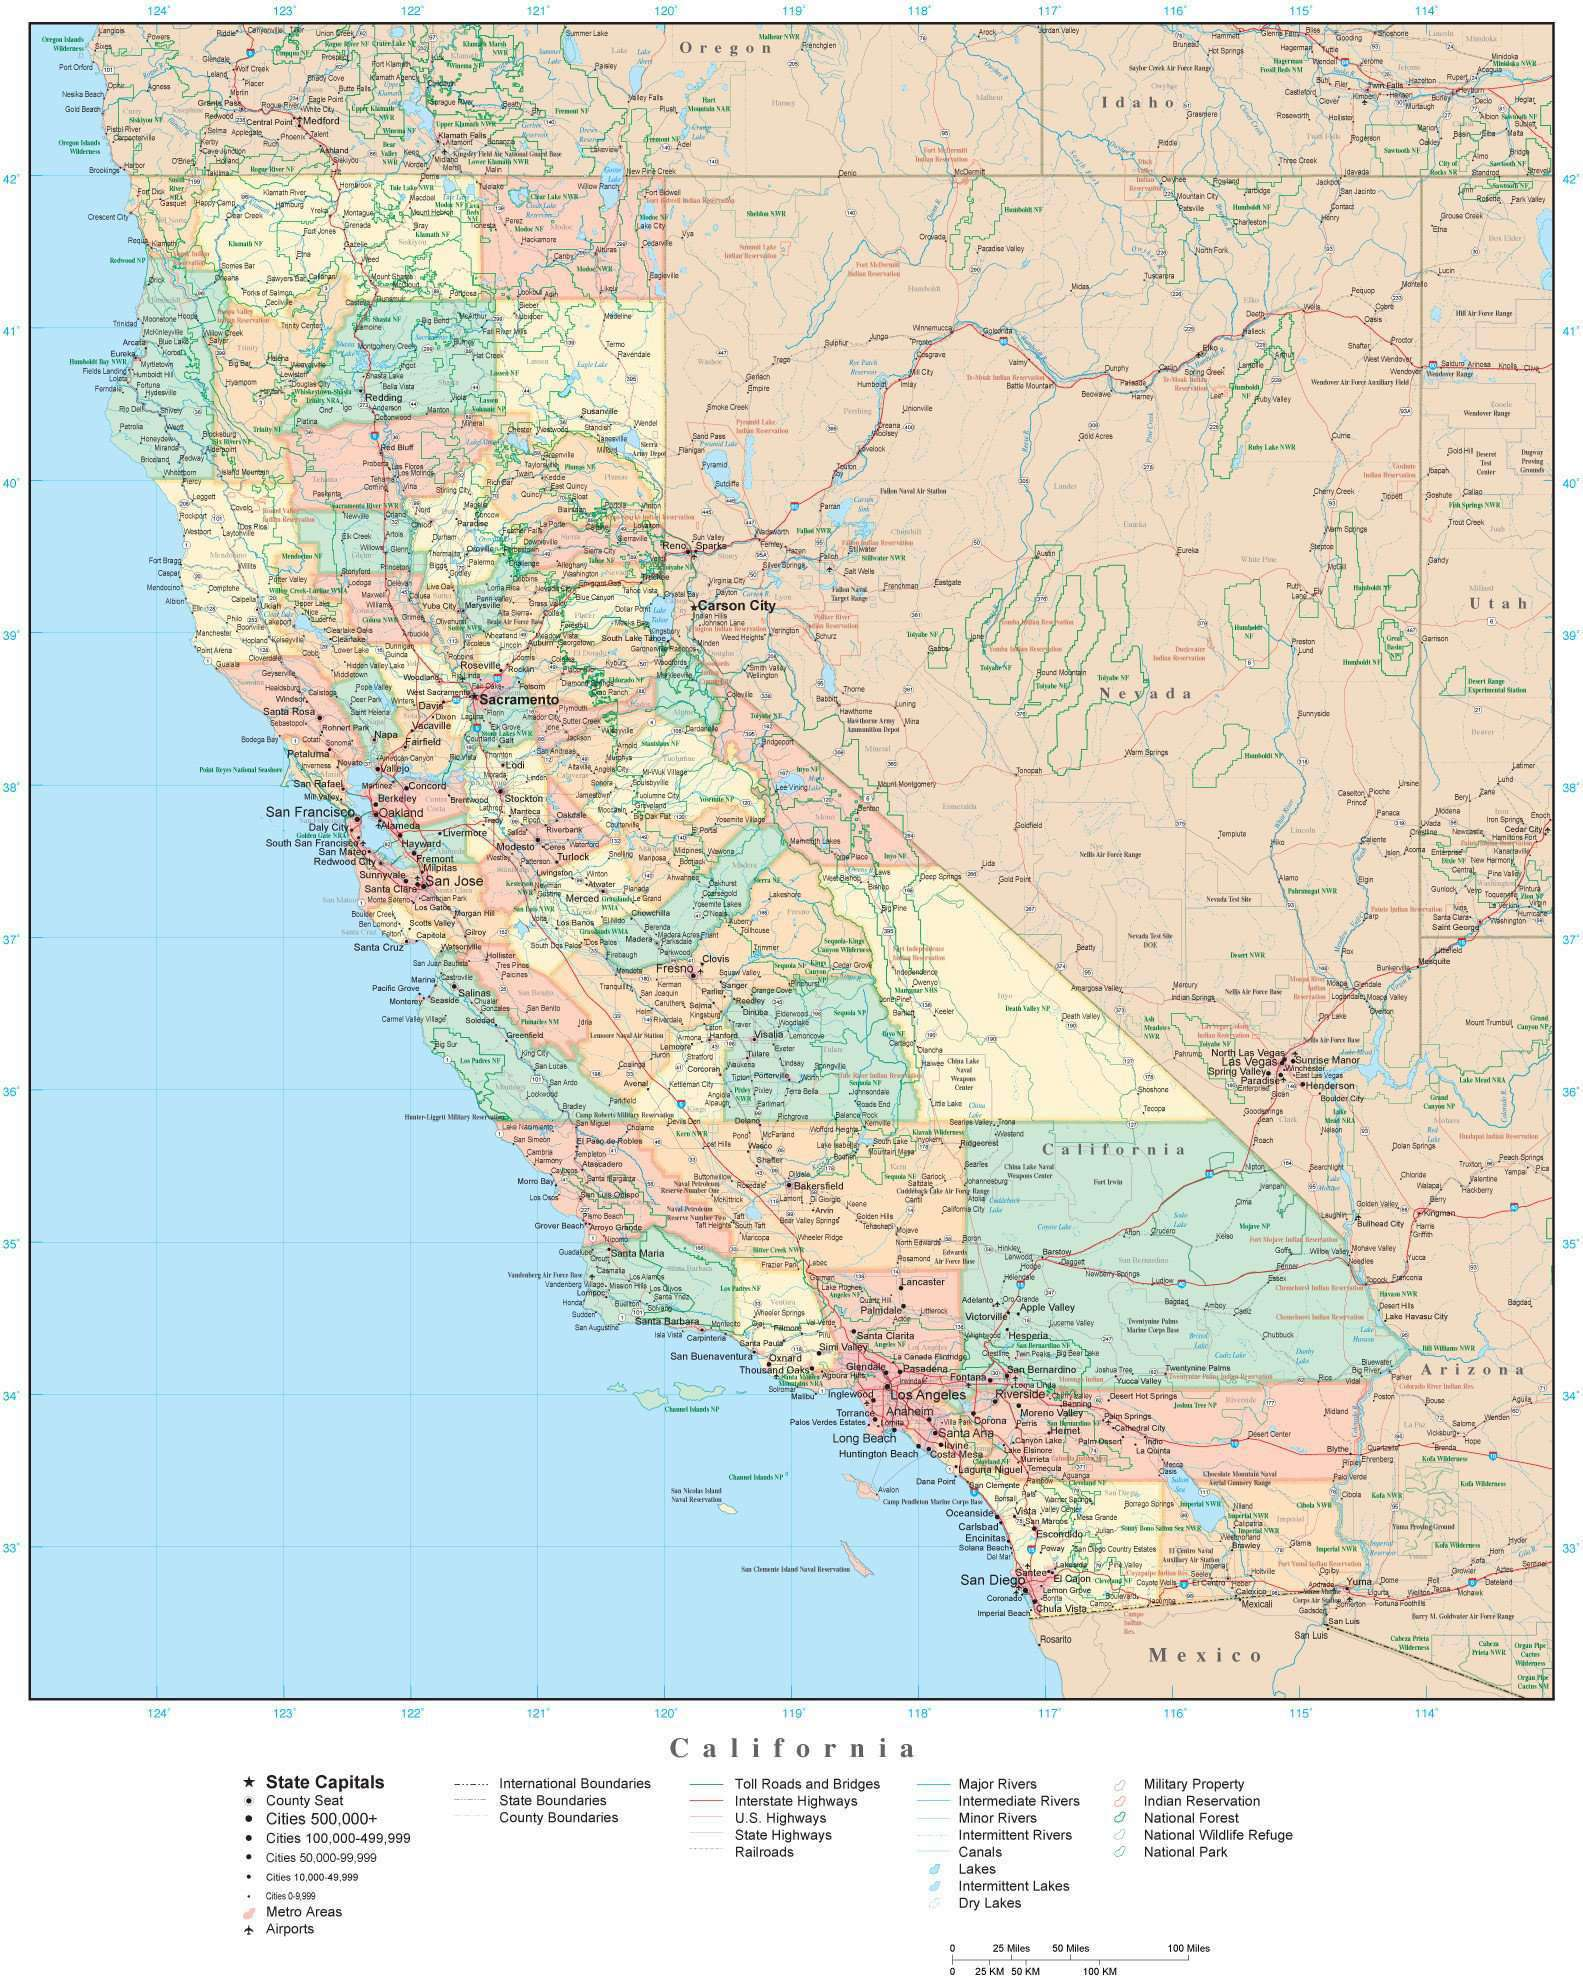 Detailed California Digital Map with Counties, Cities, Highways, Railroads, on north edwards, pismo beach, california state hunting zone map, all of california cities map, sacramento california map, bolivar city map, antelope valley, san francisco bay area highway map, california school for the deaf map, edwards, california, santa barbara map, california mountains on map, lake isabella, los angeles map, indian wells, kern county, california, twentynine palms, cal state channel islands campus map, kern county map, southern california map, burbank map, arroyo grande, california national parks map, cal city map, california city municipal airport, california zip code map, red rock canyon state park map, grover beach, dana point map, west coast california cities map, california indian tribes native american regions map,